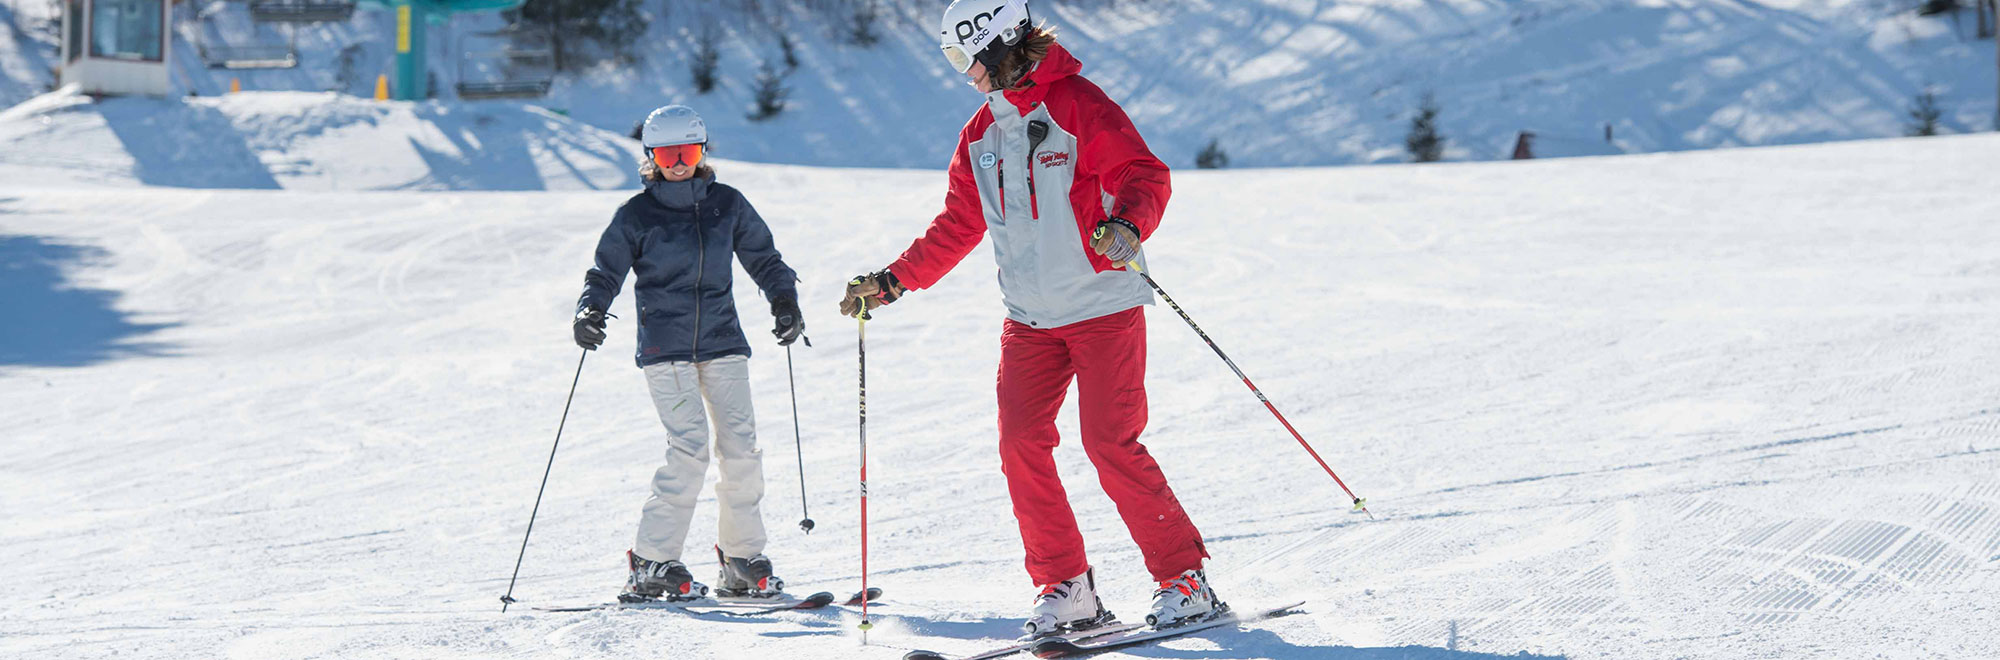 Ski Instructor teaching a student